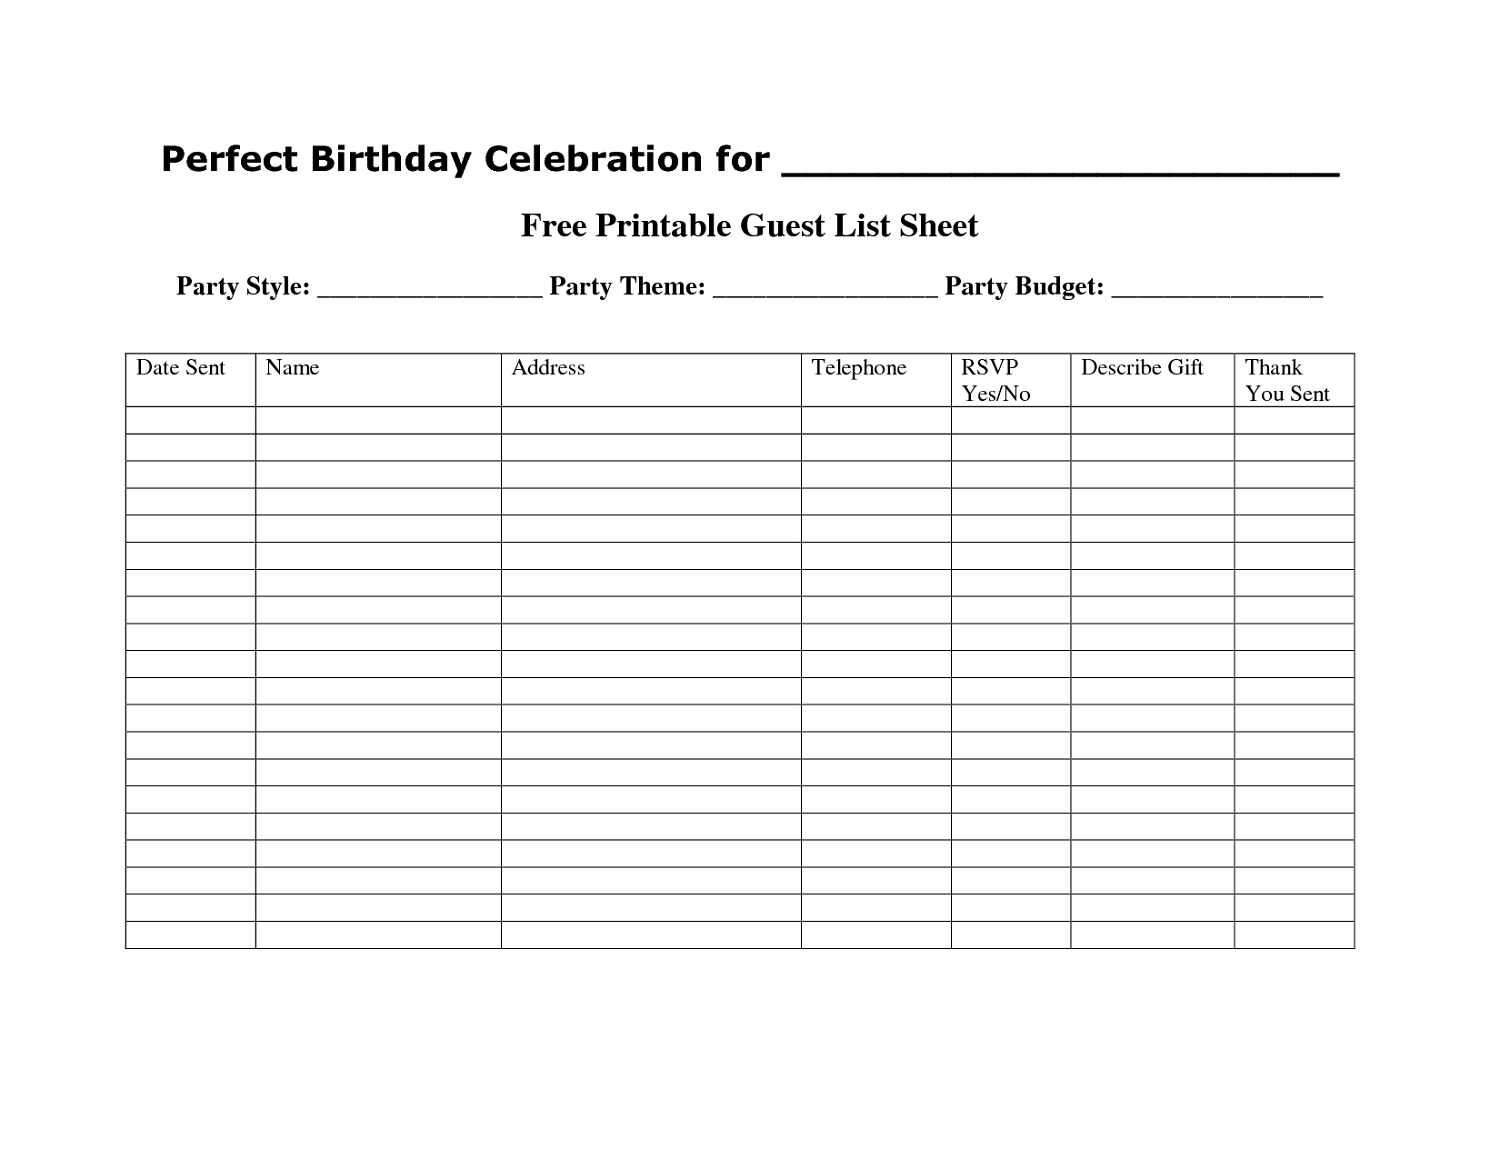 Free Printable Templates For Any Purposes